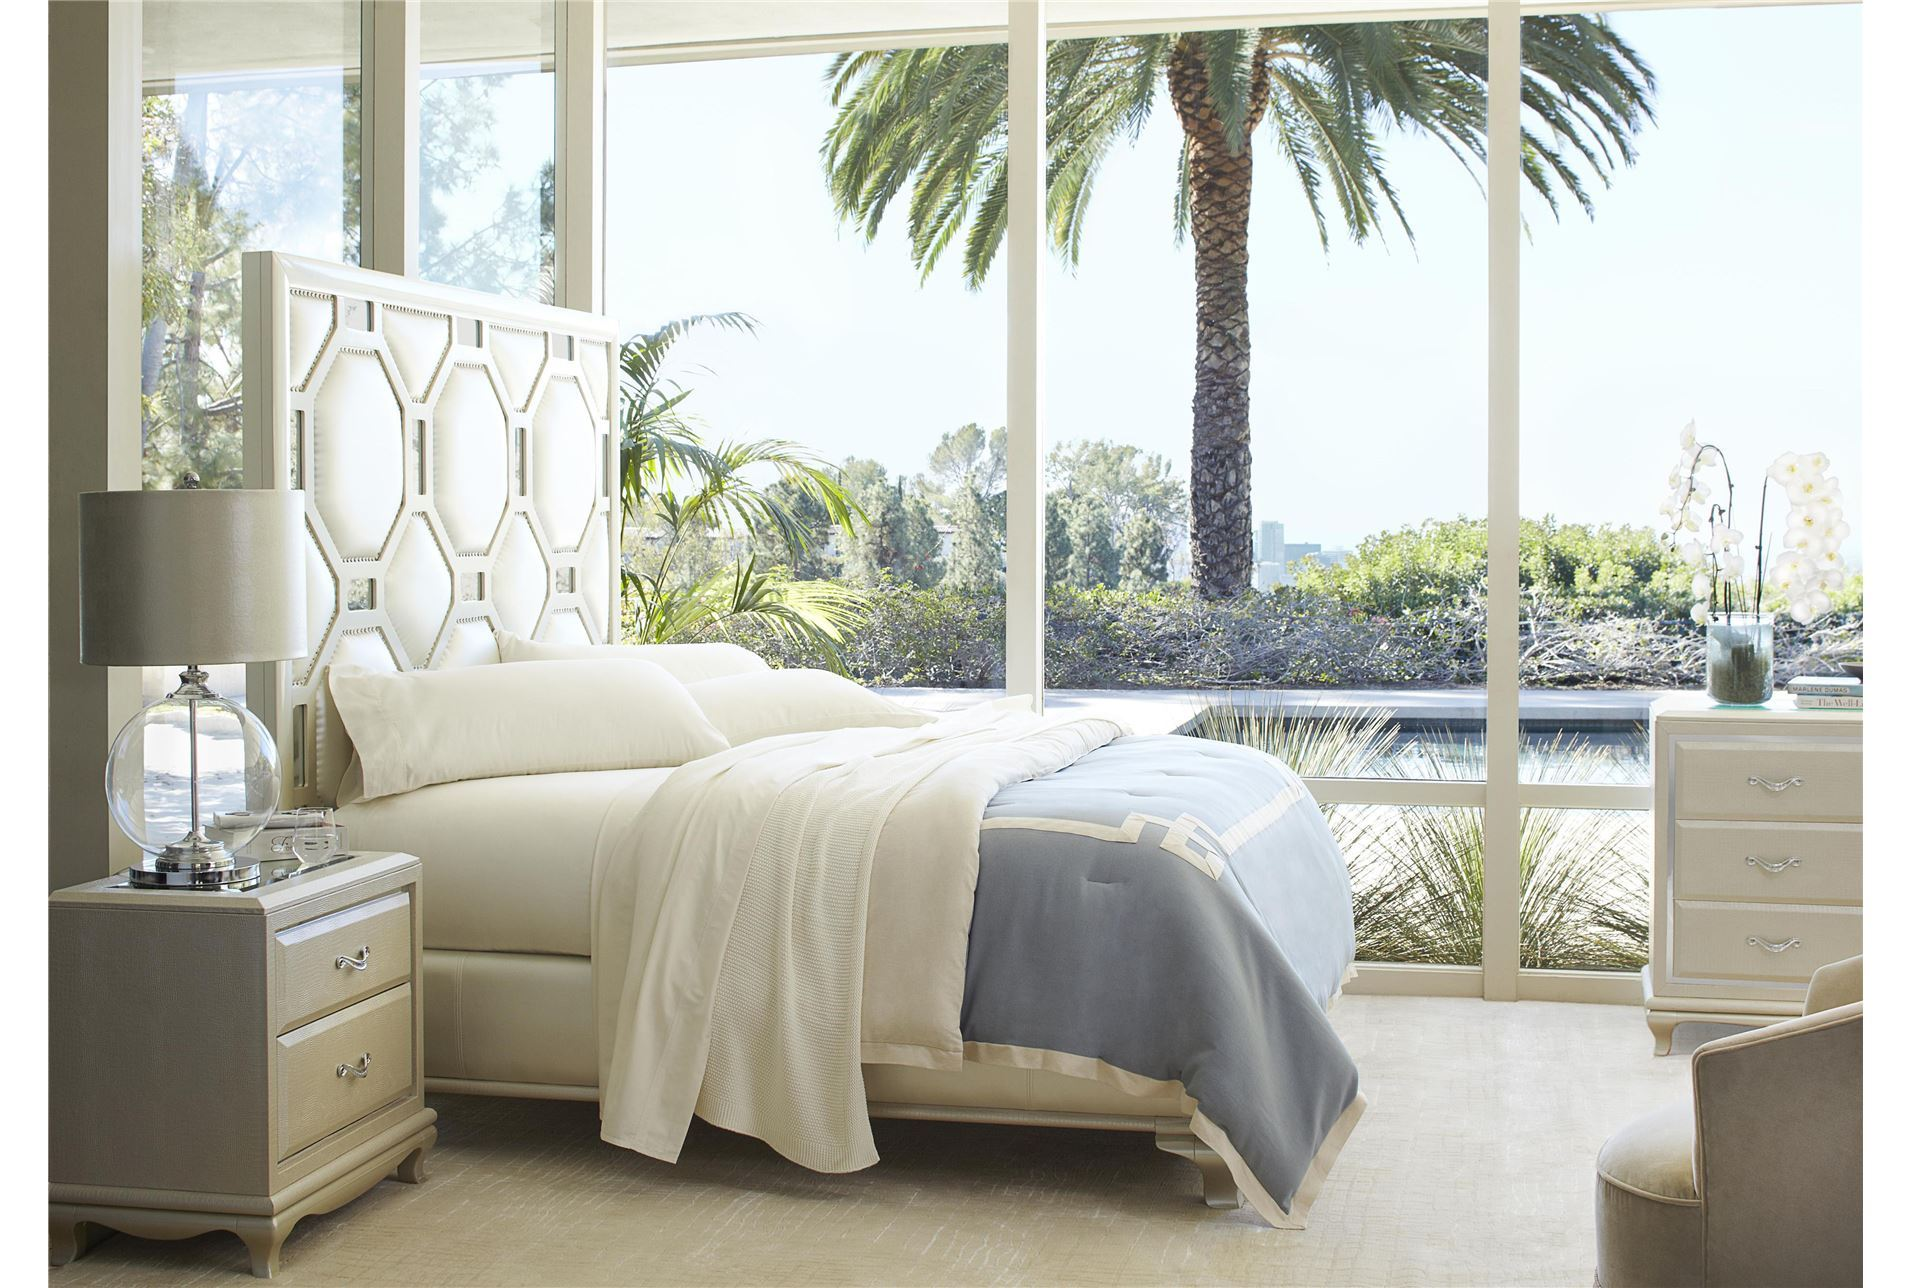 7 Beautiful White Queen Size Beds From US Stores - Cute Furniture